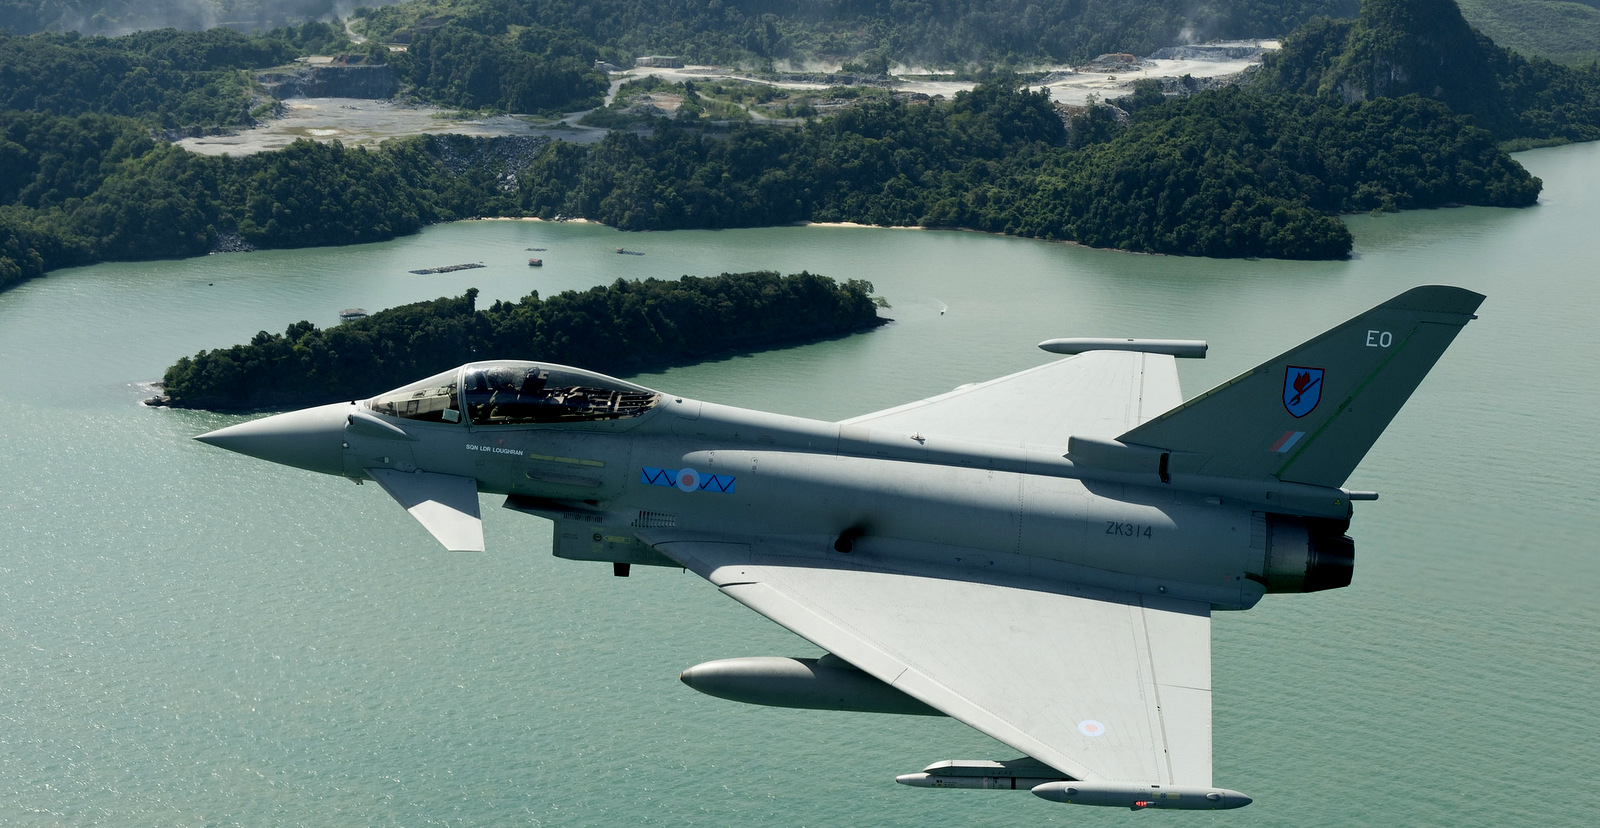 An RAF Typhoon, made by BAE systems over Penang Island in Malaysia, November 2011. (Photo: Geoff Lee/BAE)